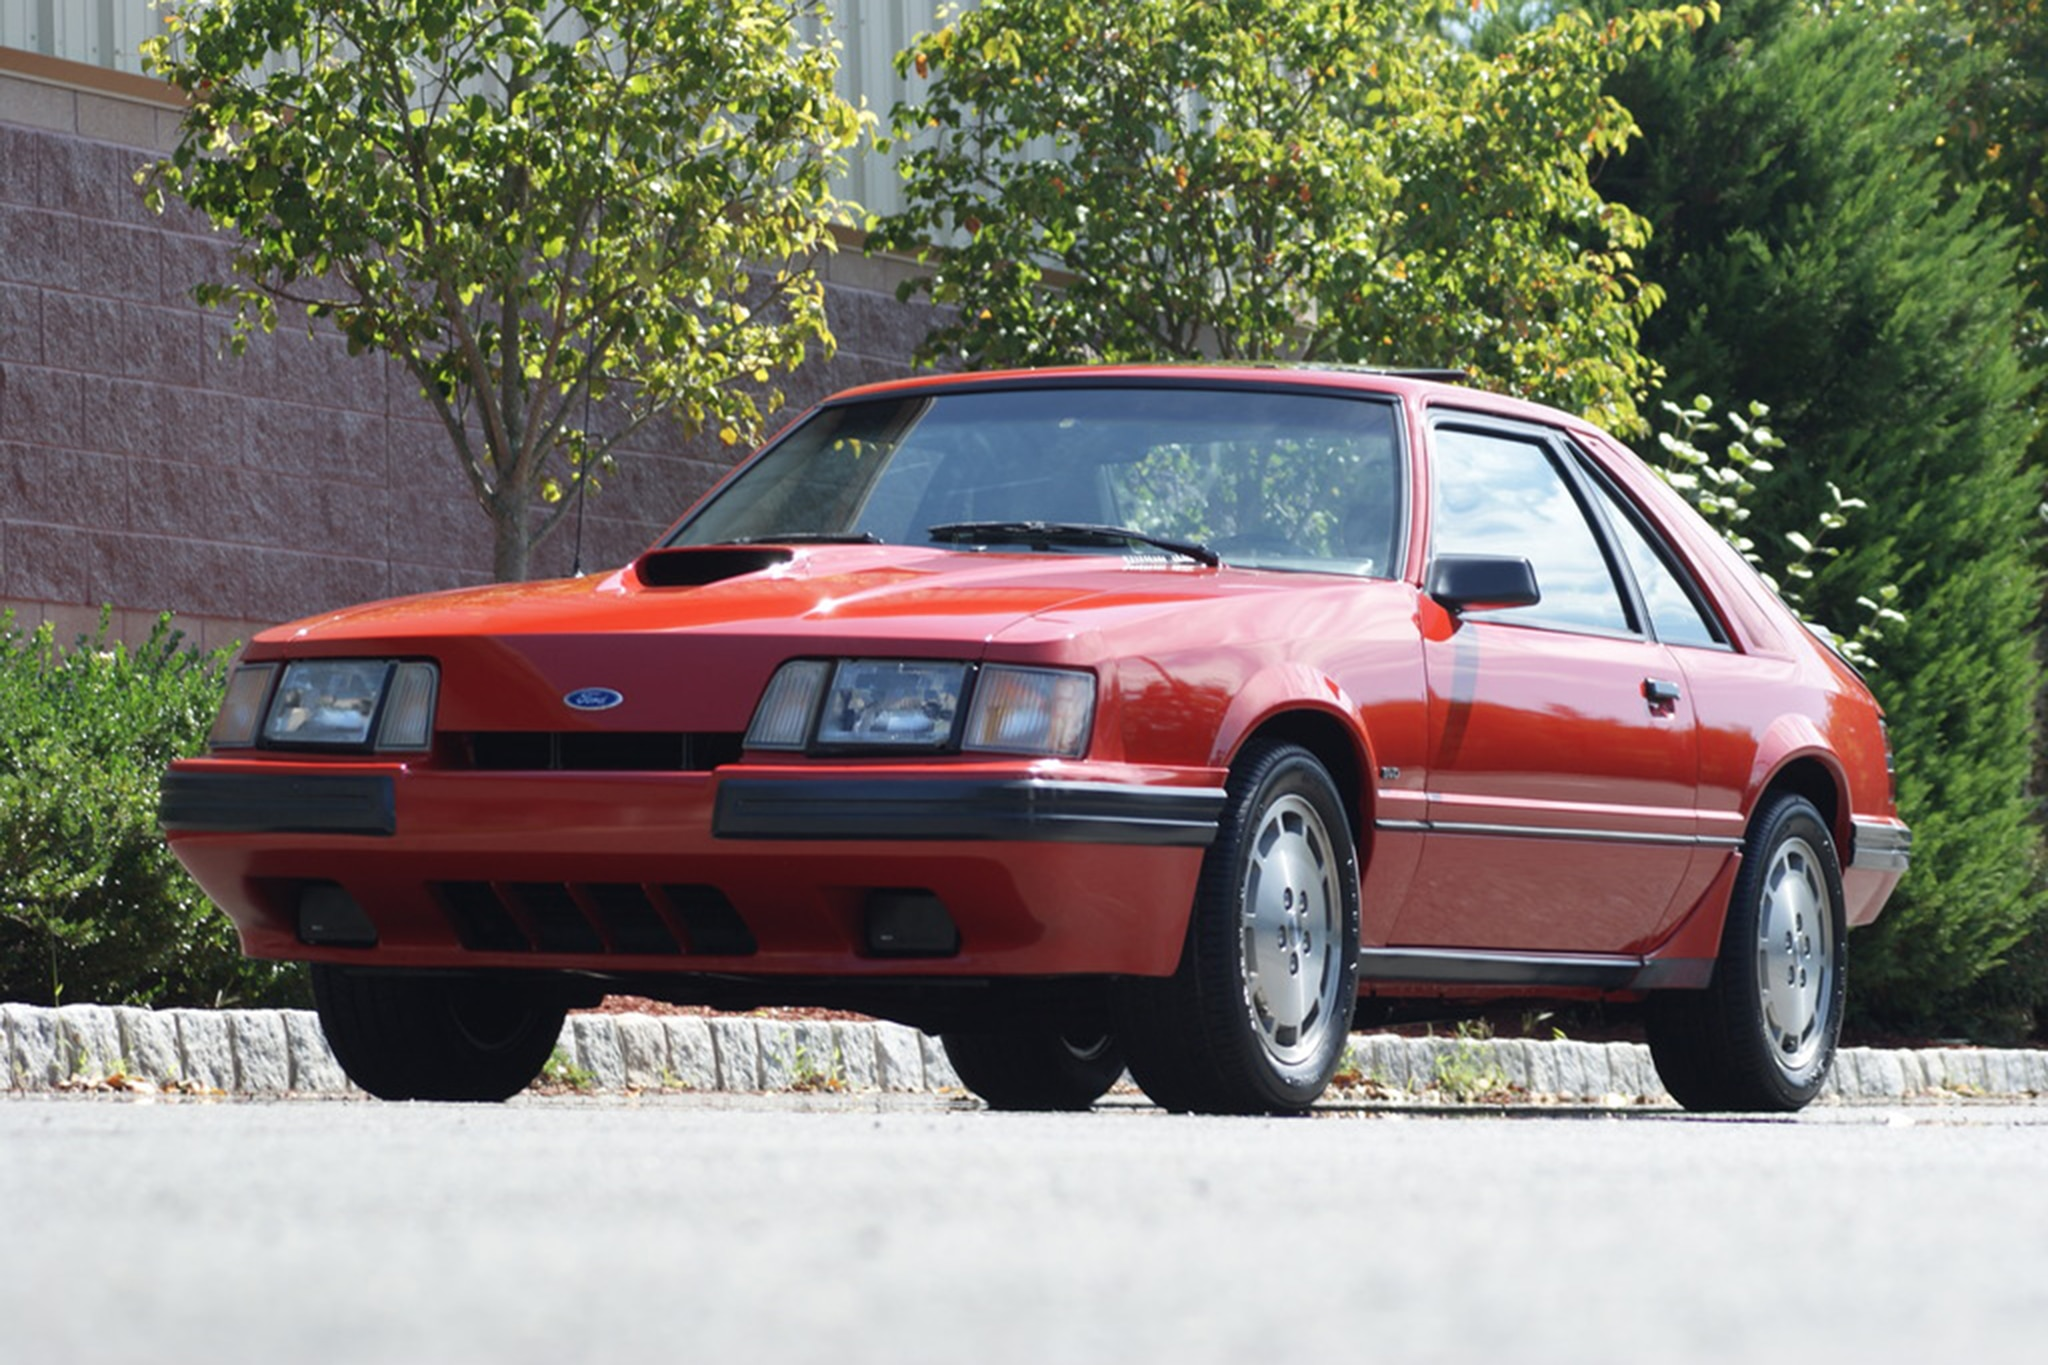 Ford Mustang Gt Convertible 2017 >> Just Listed: 1986 Ford Mustang SVO | Automobile Magazine